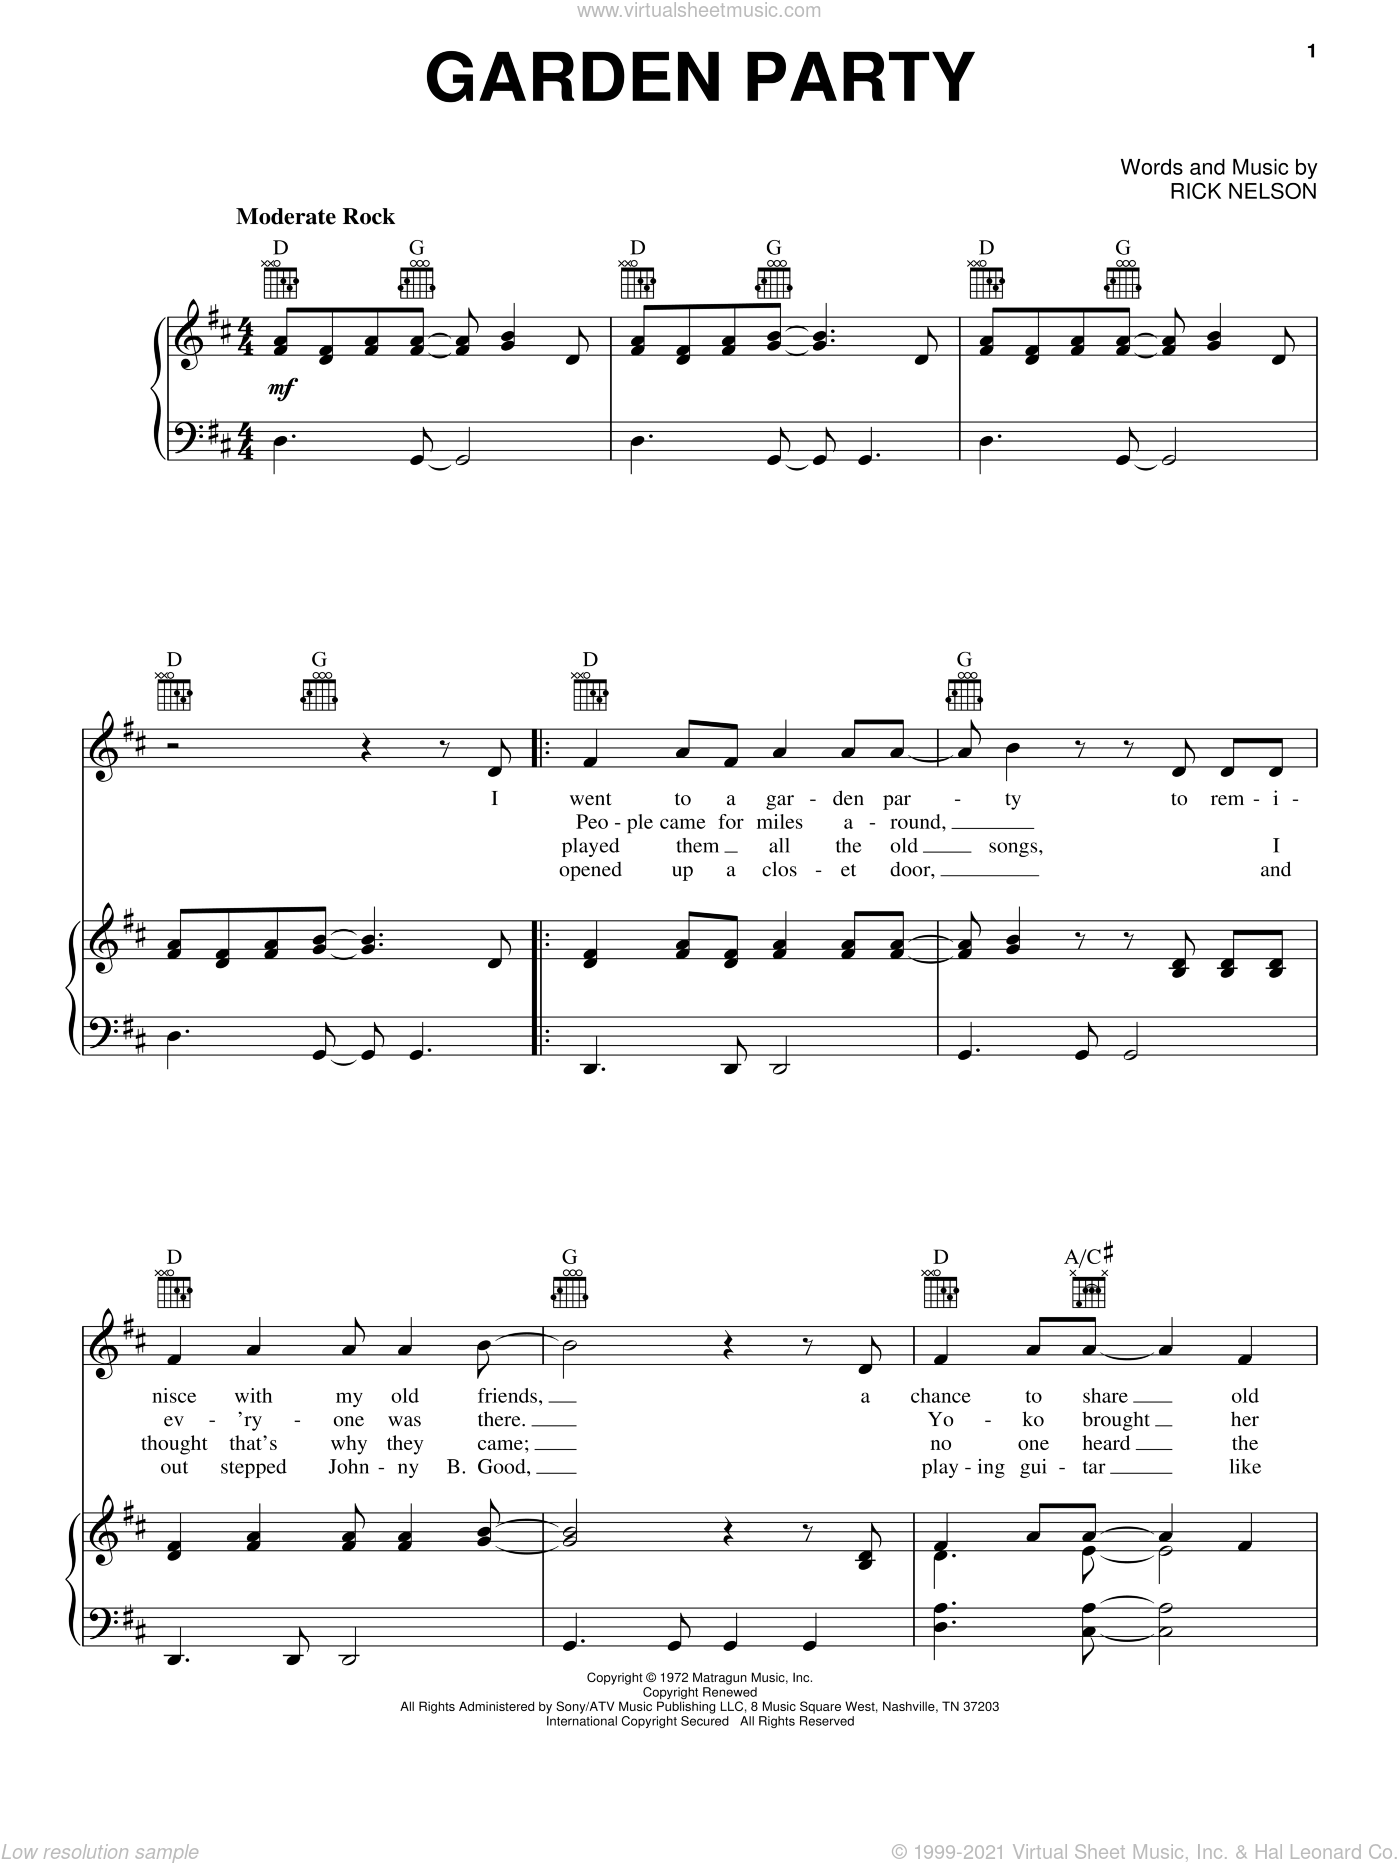 Garden Party sheet music for voice, piano or guitar by Ricky Nelson